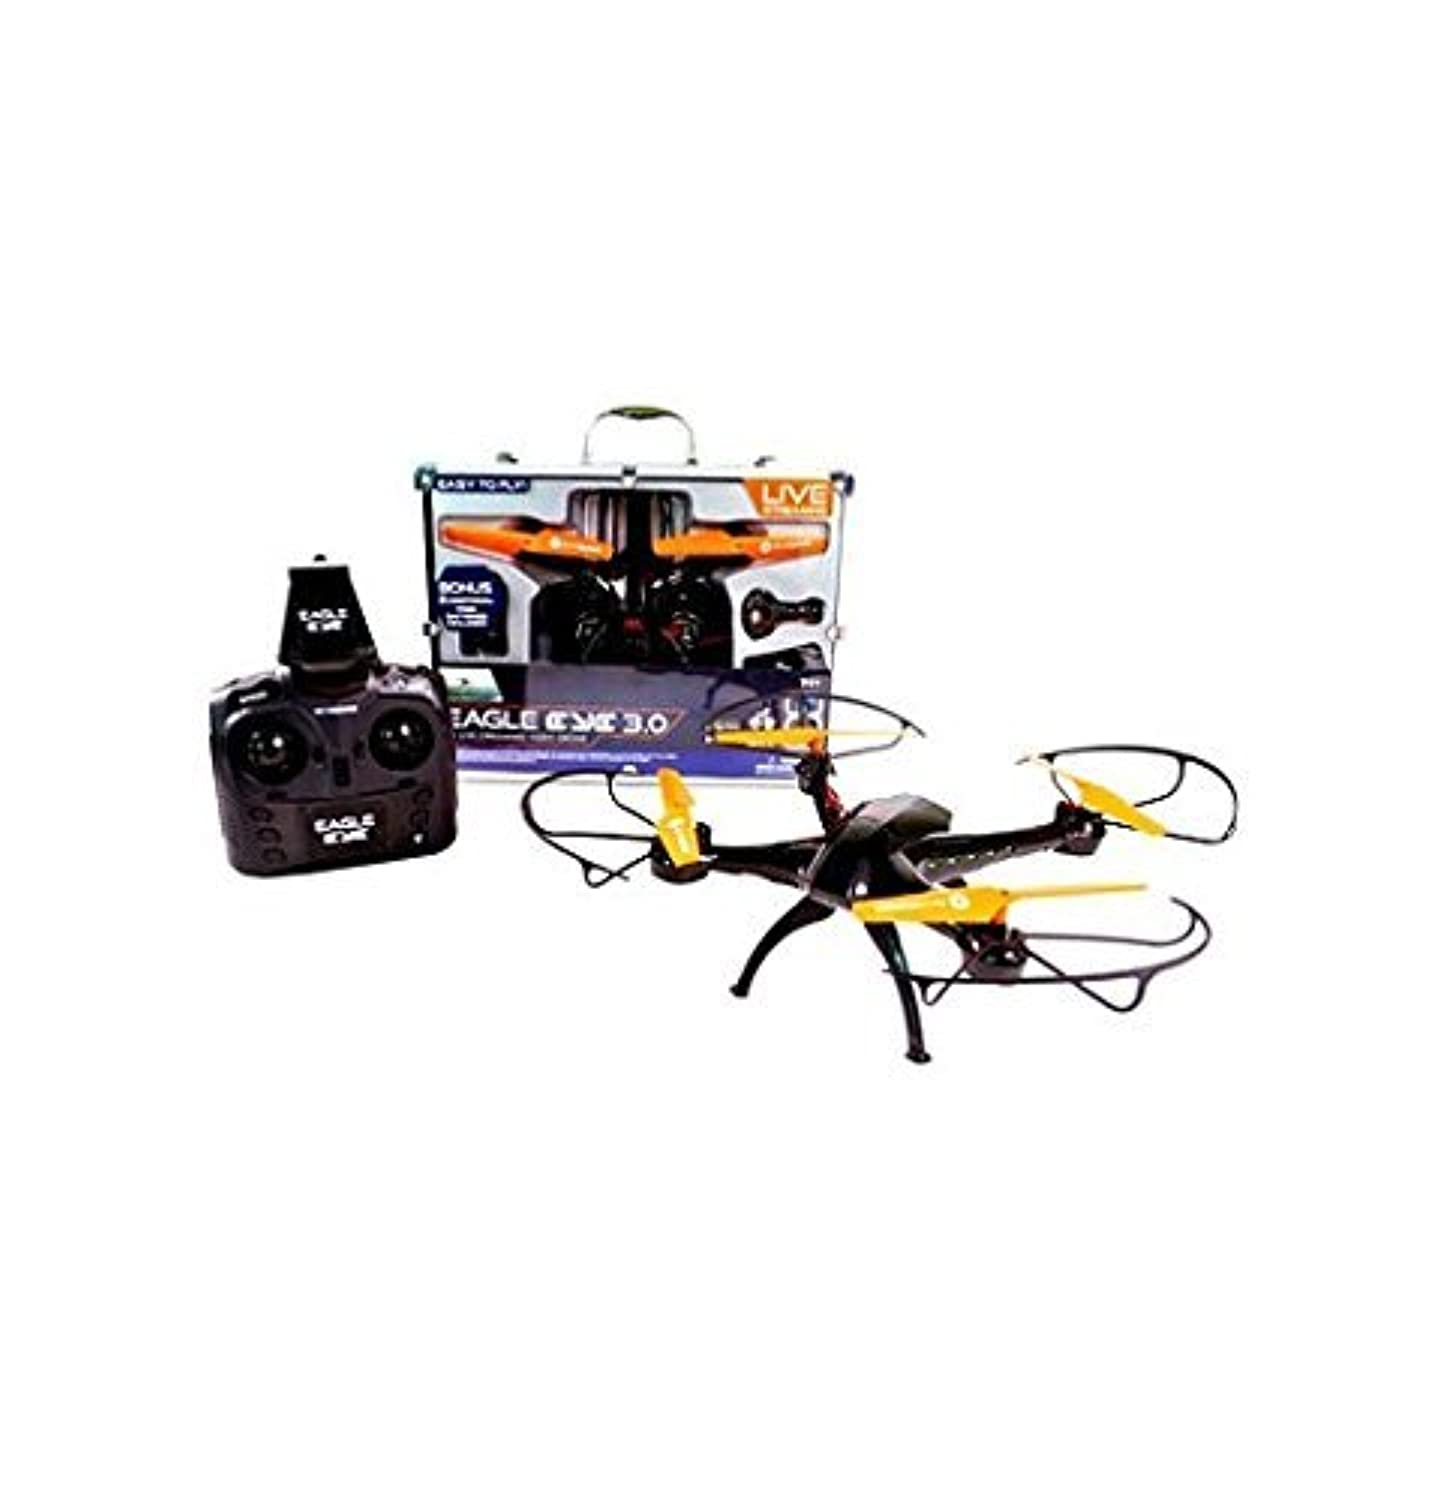 Braha Skydrones Eagle Eye 2.0 - Live Streaming HD Drone in Aluminum Carrying Case with Auto Hover Takeoff and Landing [並行輸入品]